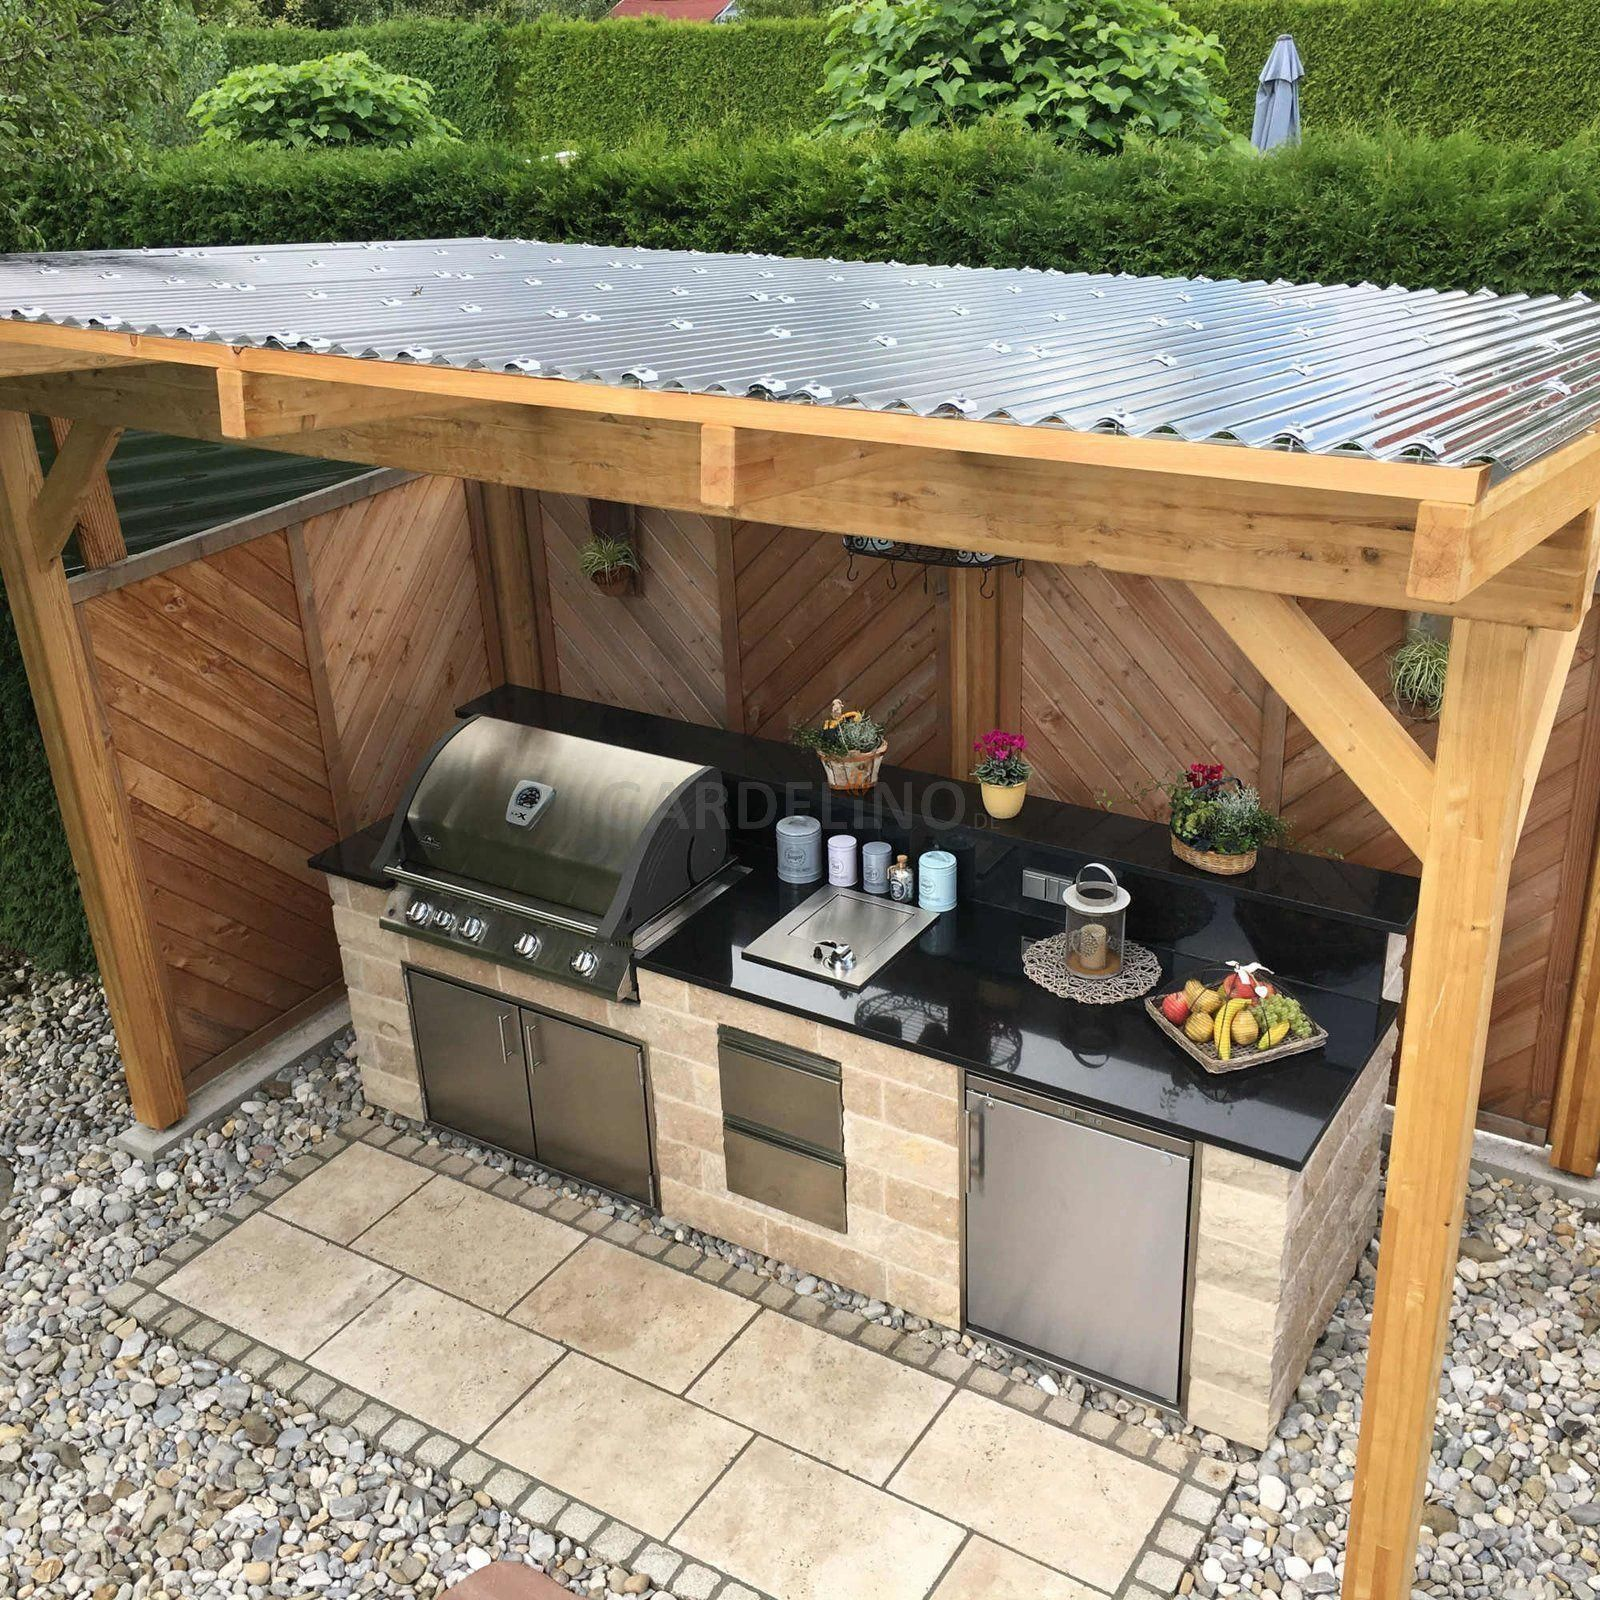 Best Outdoor Kitchen Ideas And Backyard Design For Small Space On A Budget Find And Save Ideas Outdoor Kitchen Decor Backyard Kitchen Outdoor Kitchen Design